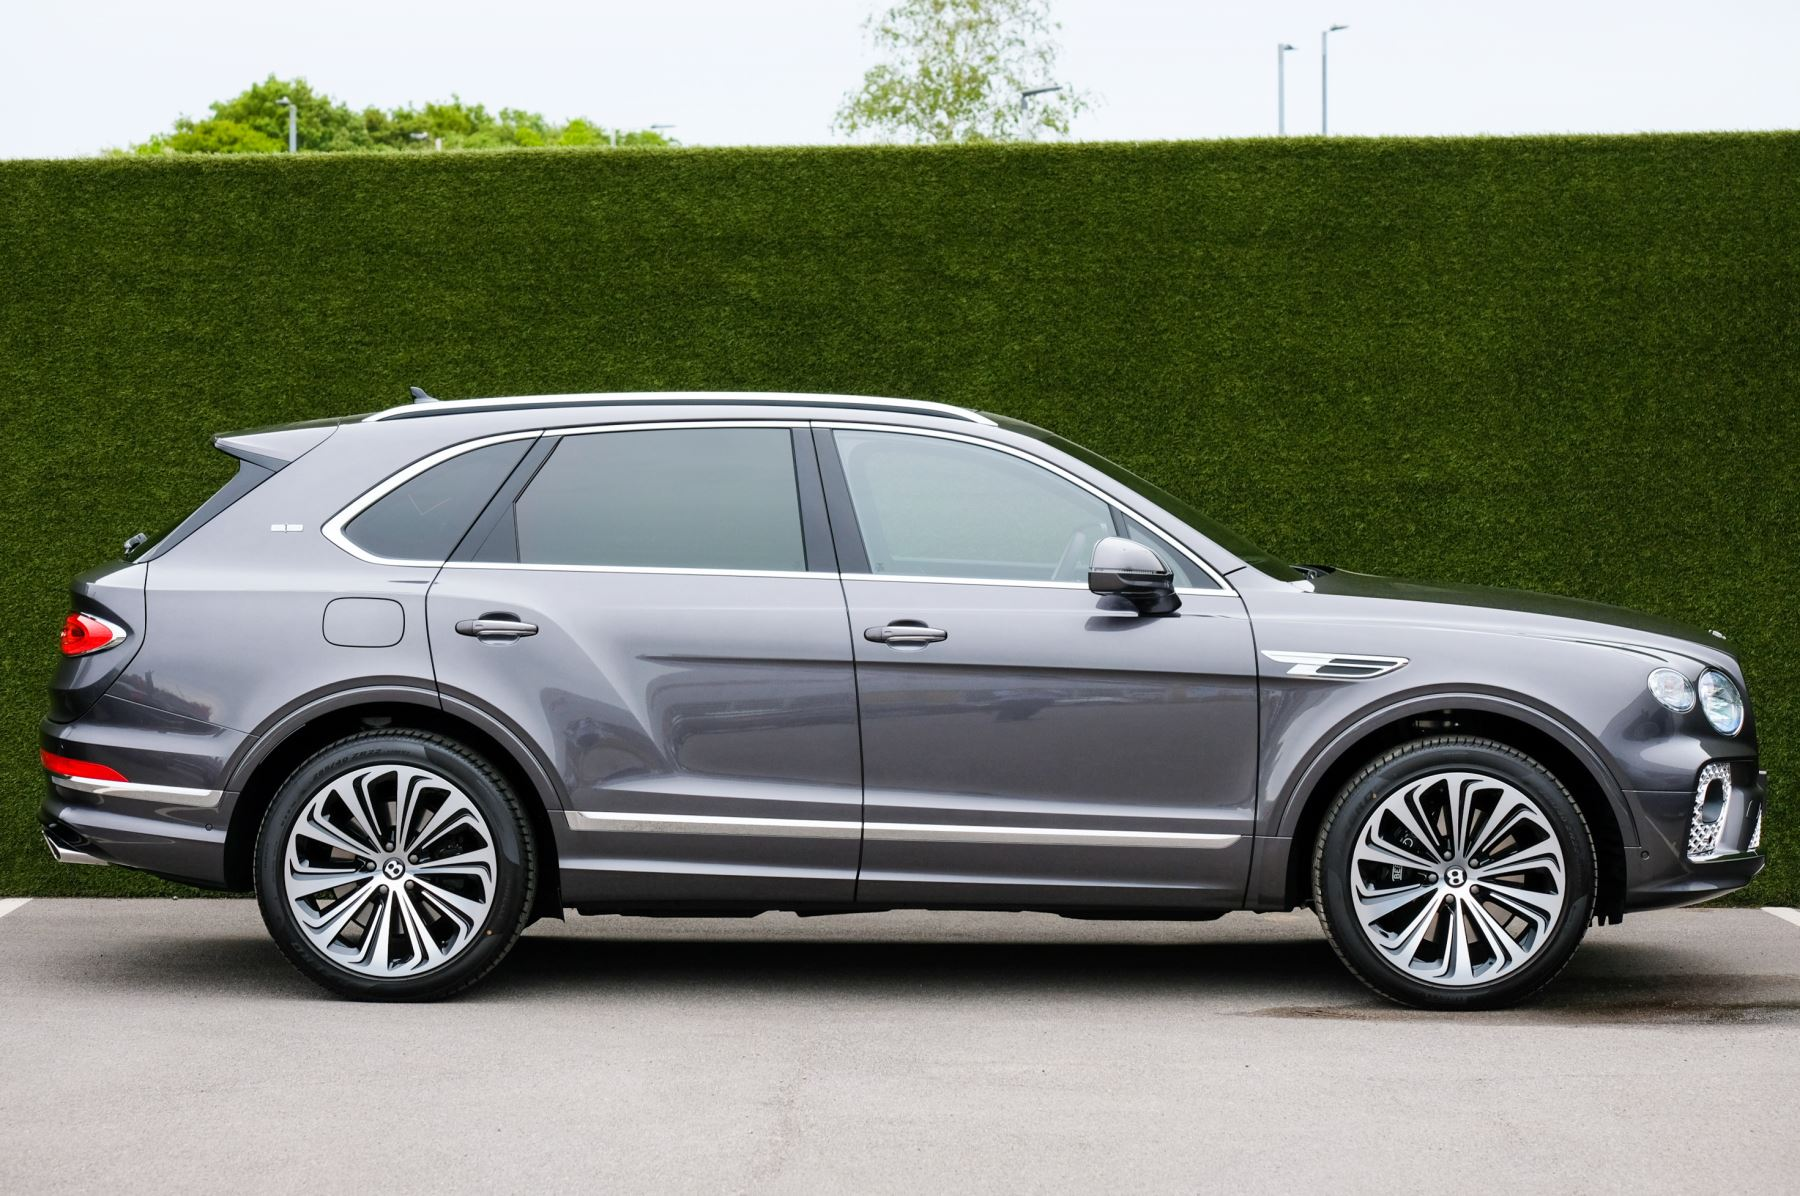 Bentley Bentayga 4.0 V8 5dr [4 Seat] - First Edition - All Terrain Specification image 3